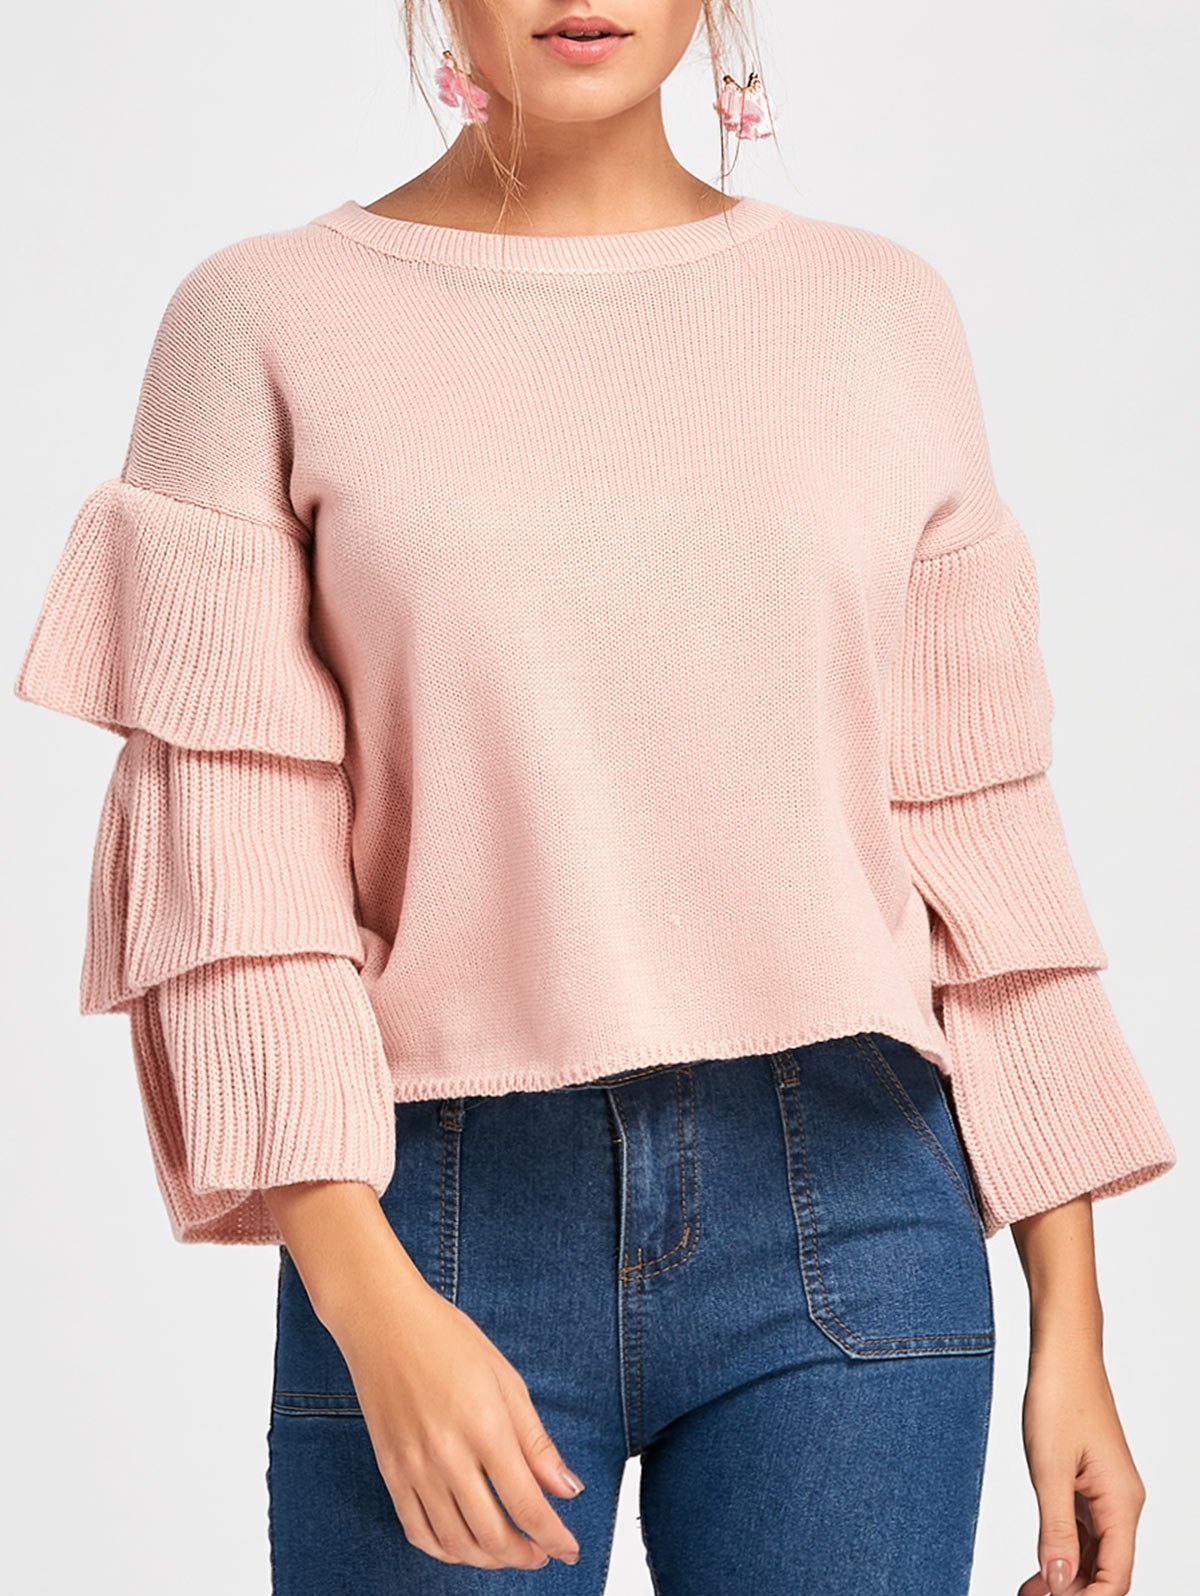 Ruffle Flare Sleeve Crew Neck Sweater